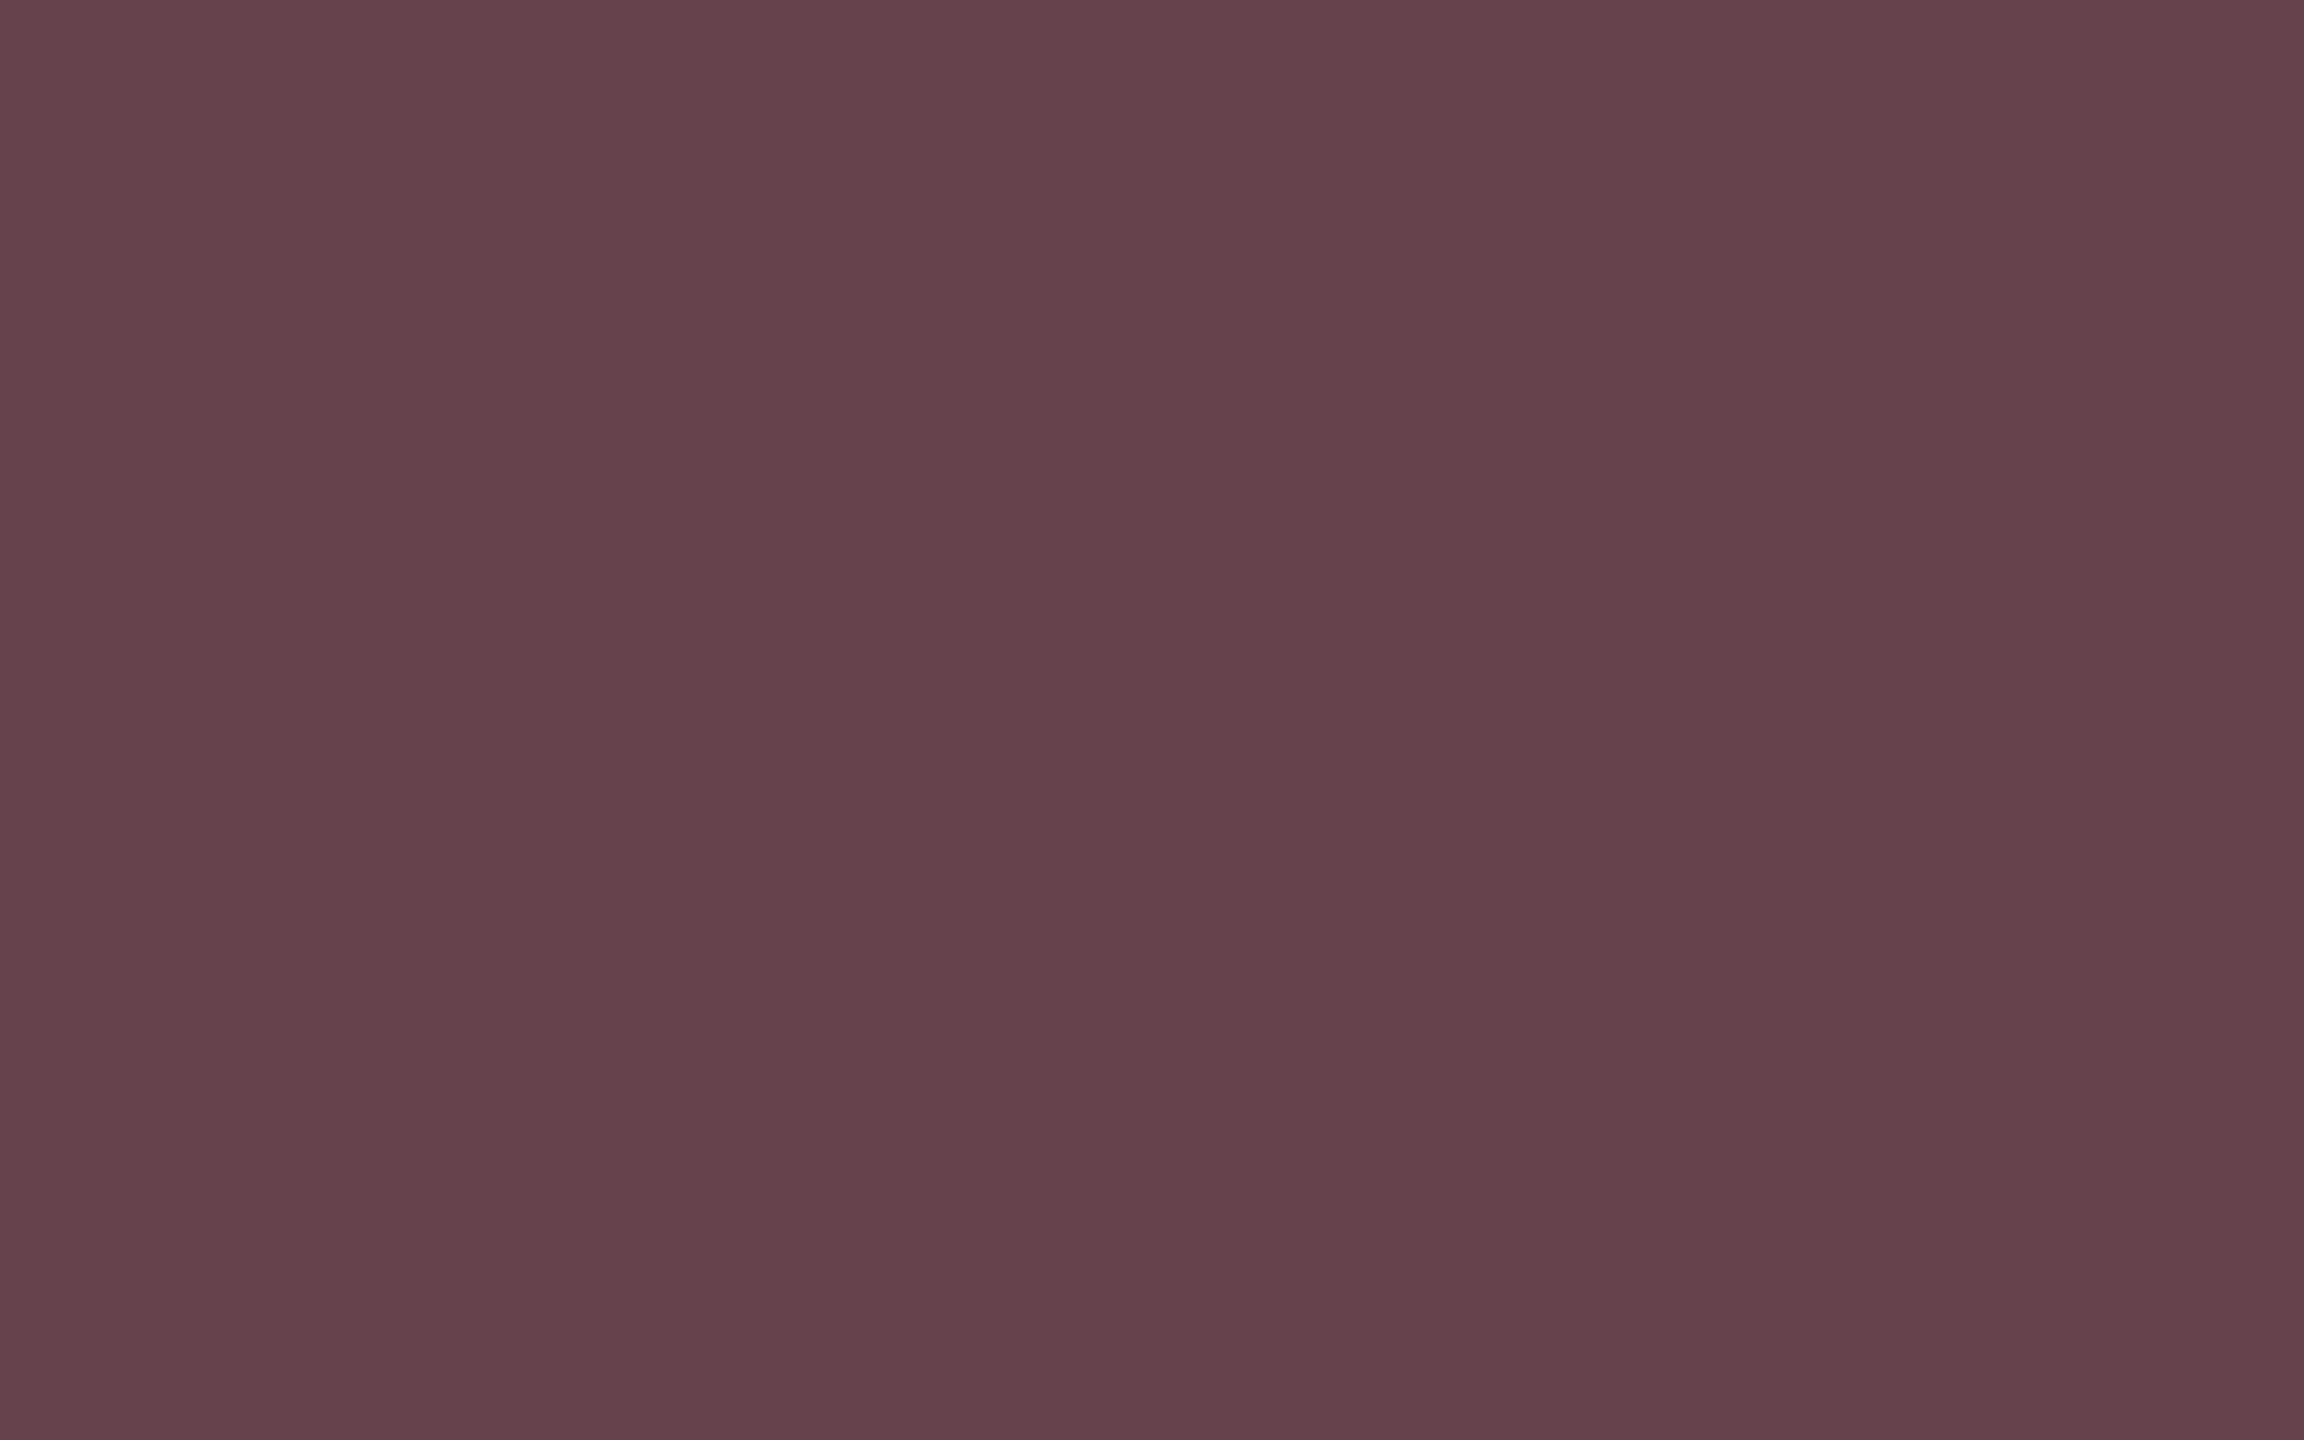 2304x1440 Deep Tuscan Red Solid Color Background